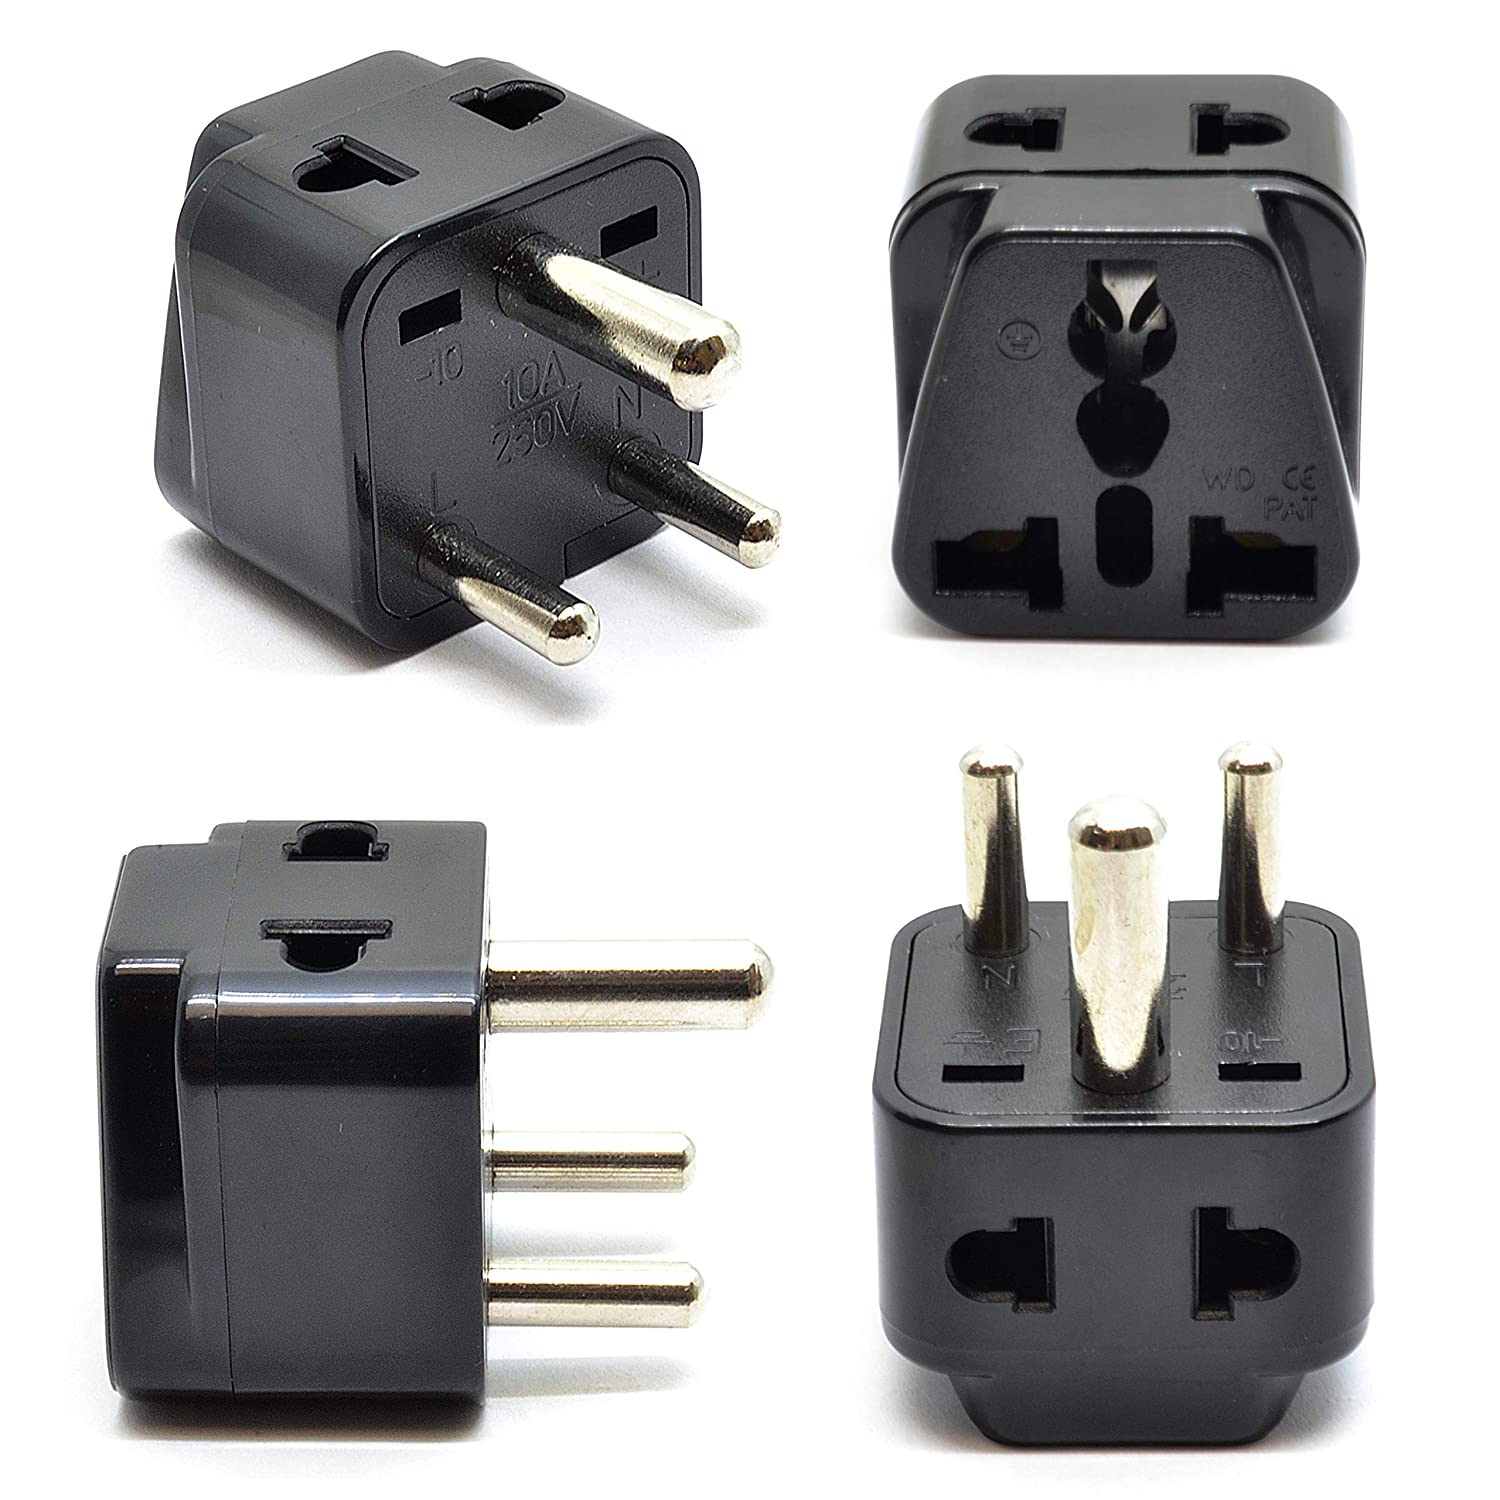 OREI 2 in 1 USA to South Africa Adapter Plug (Type M), 2 Pack, Black P21-10L-2PK